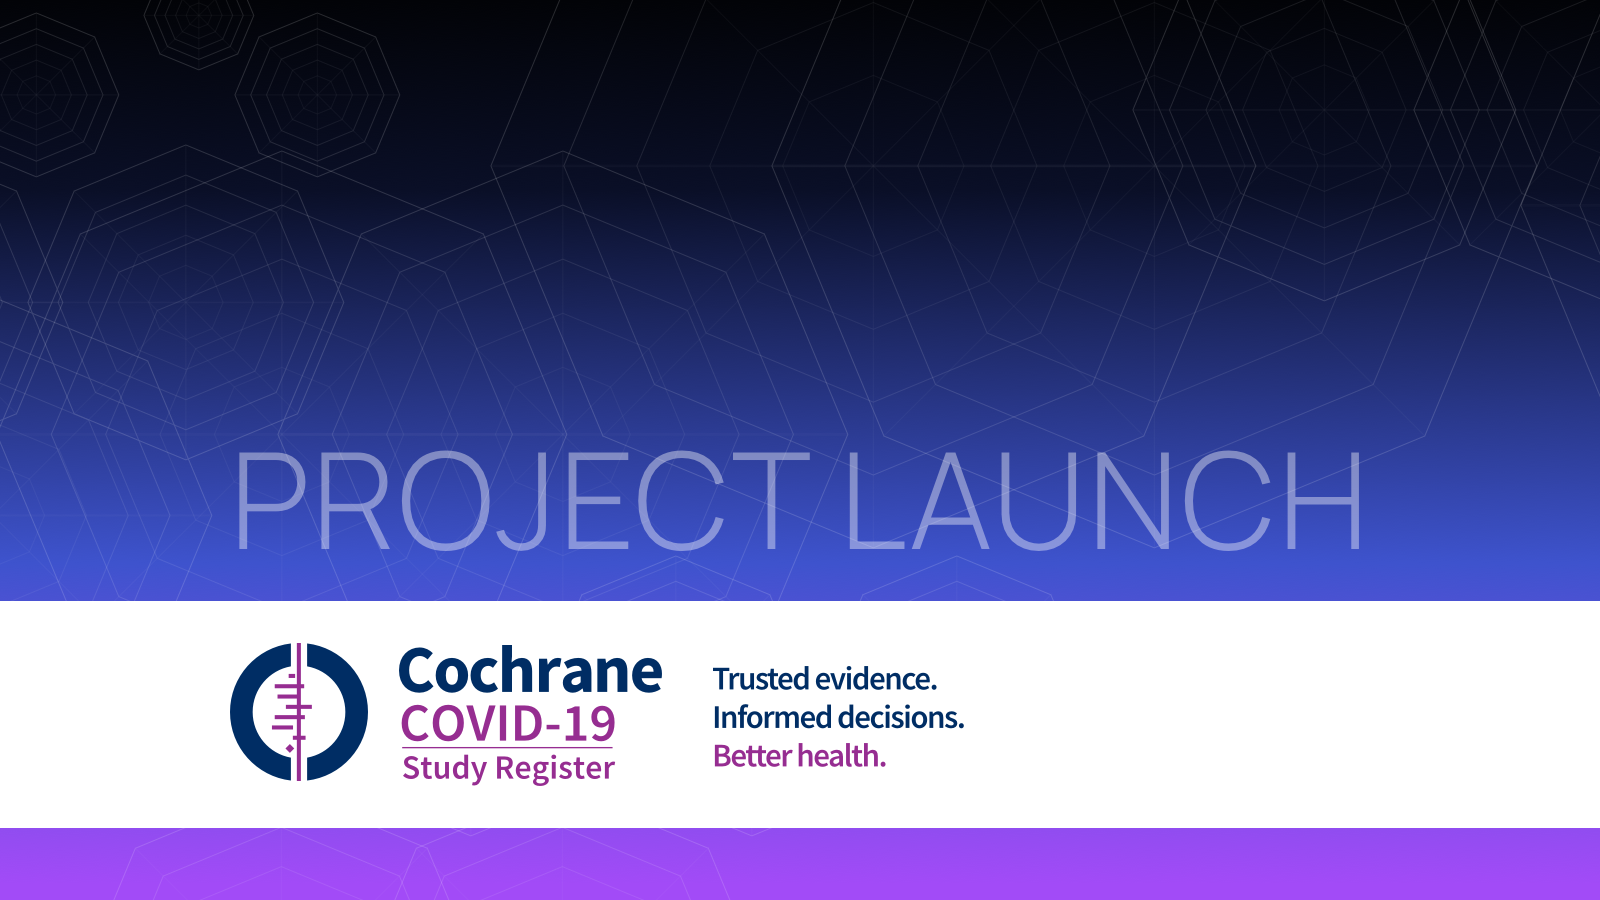 Launching the Cochrane Covid-19 Study Register